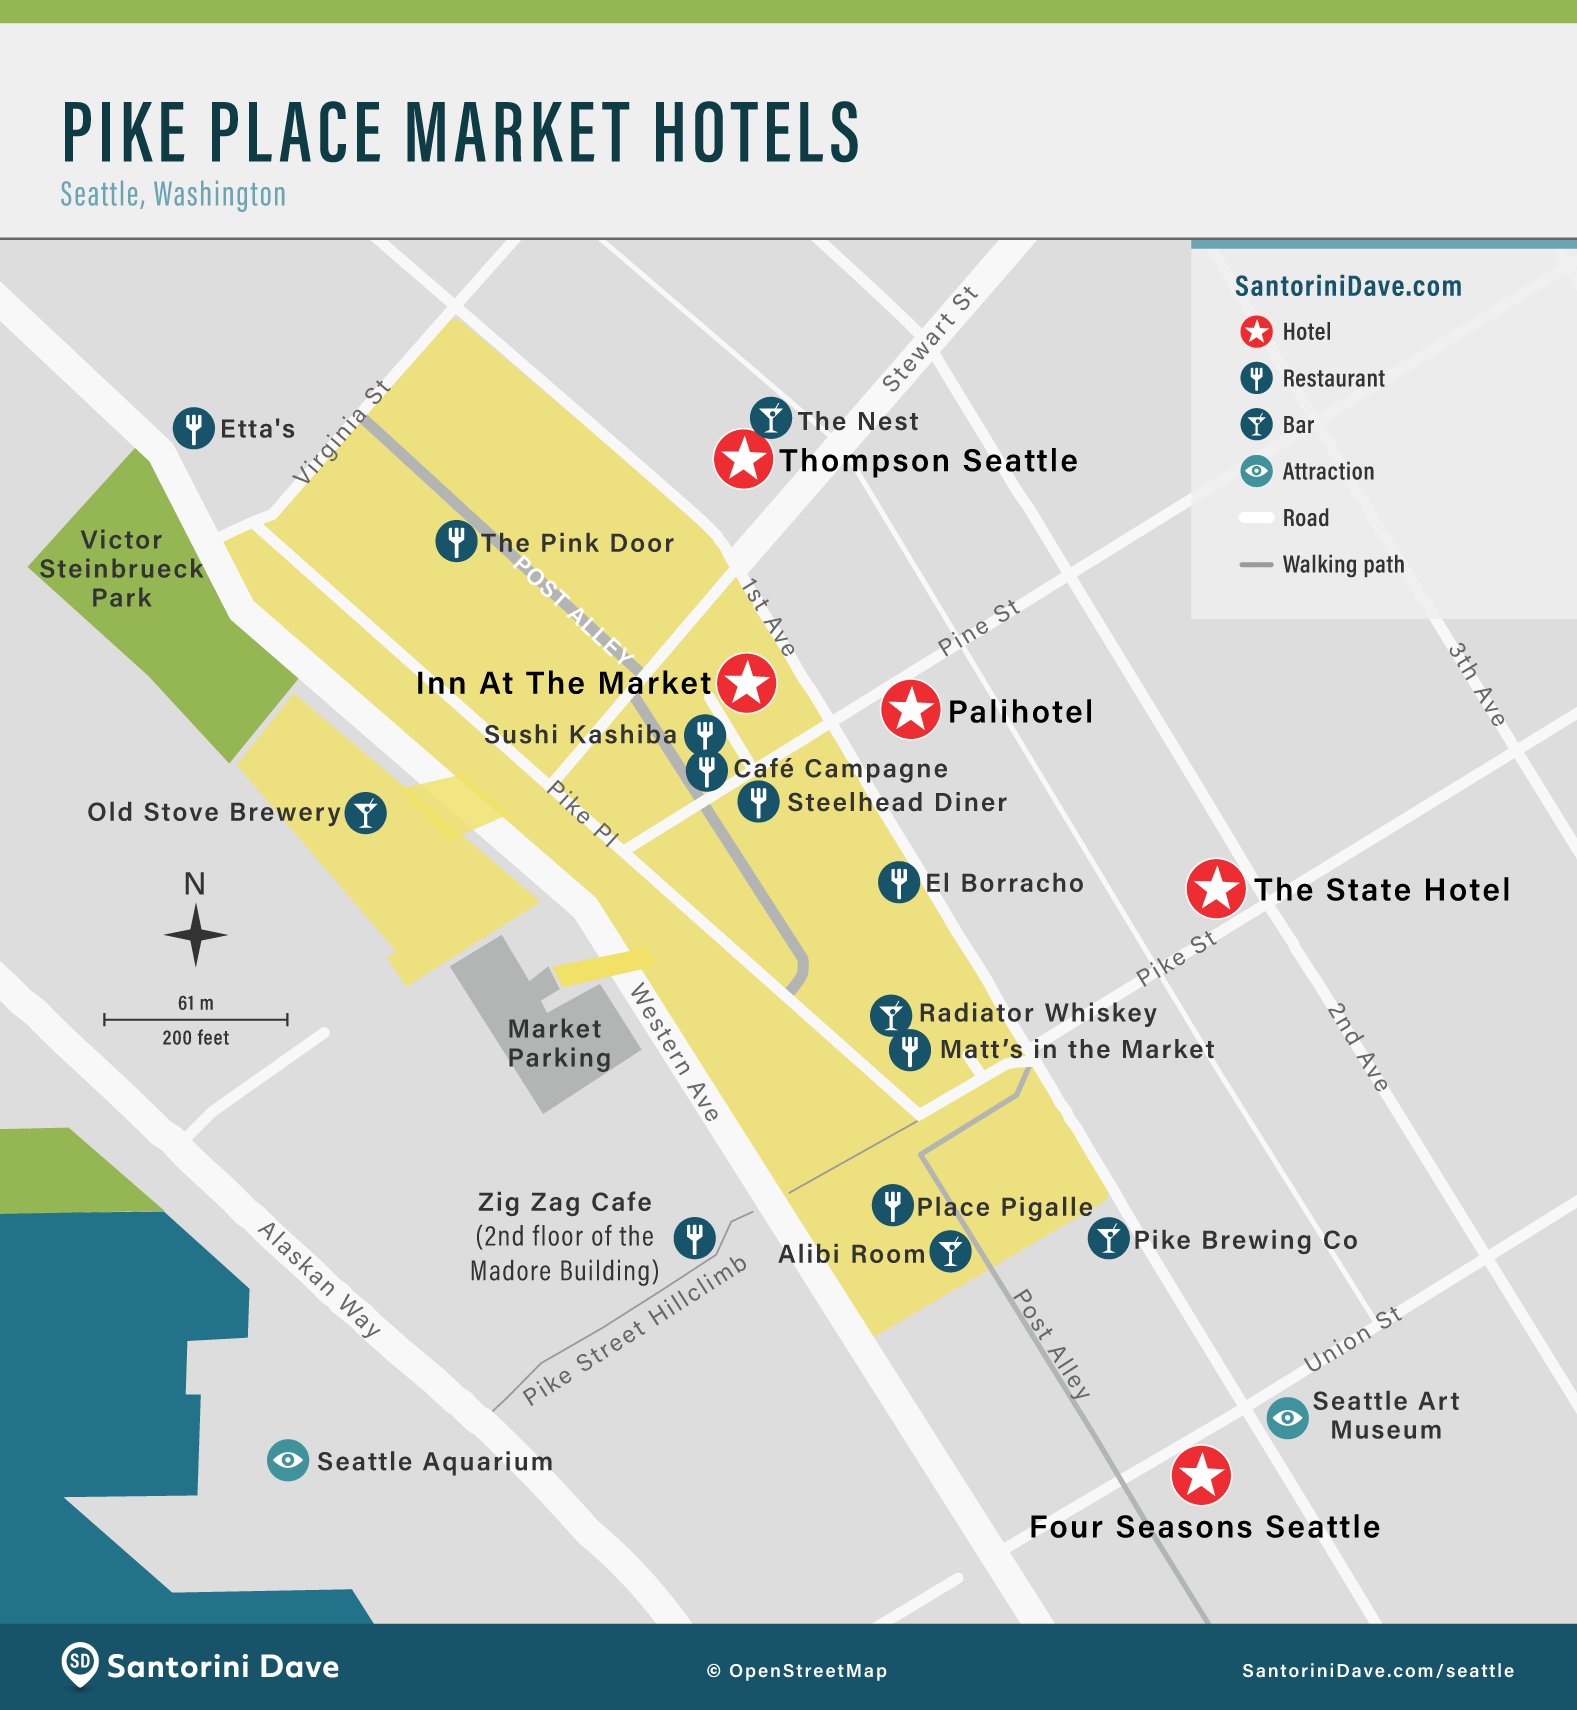 Map of Pike Place Market Hotels